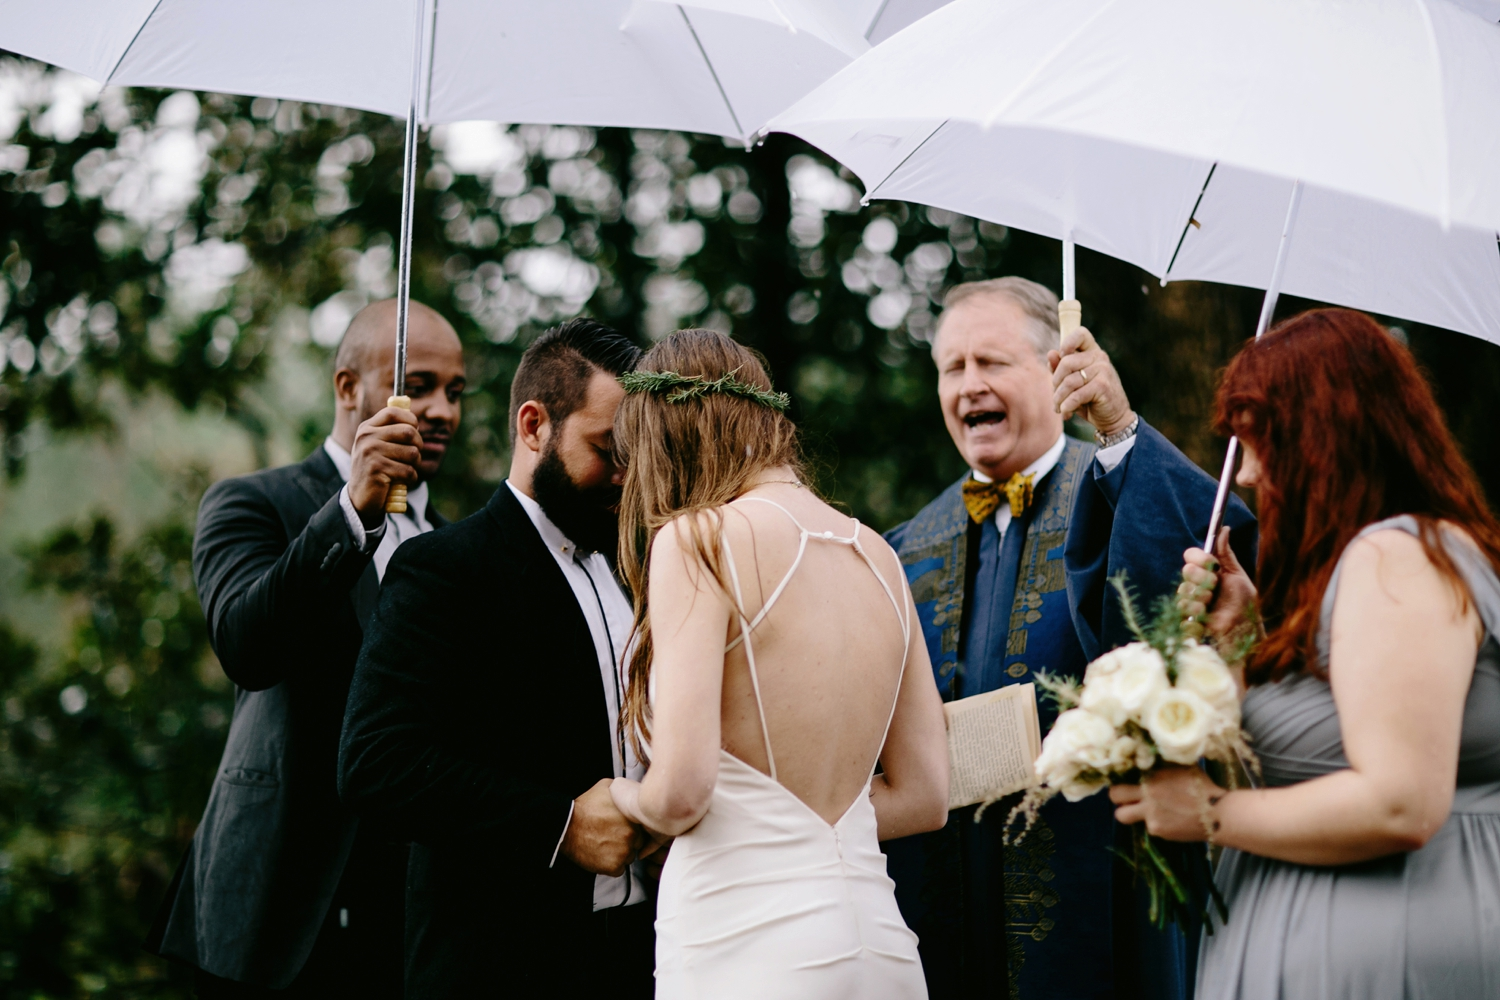 rainy-wedding-pictures-075